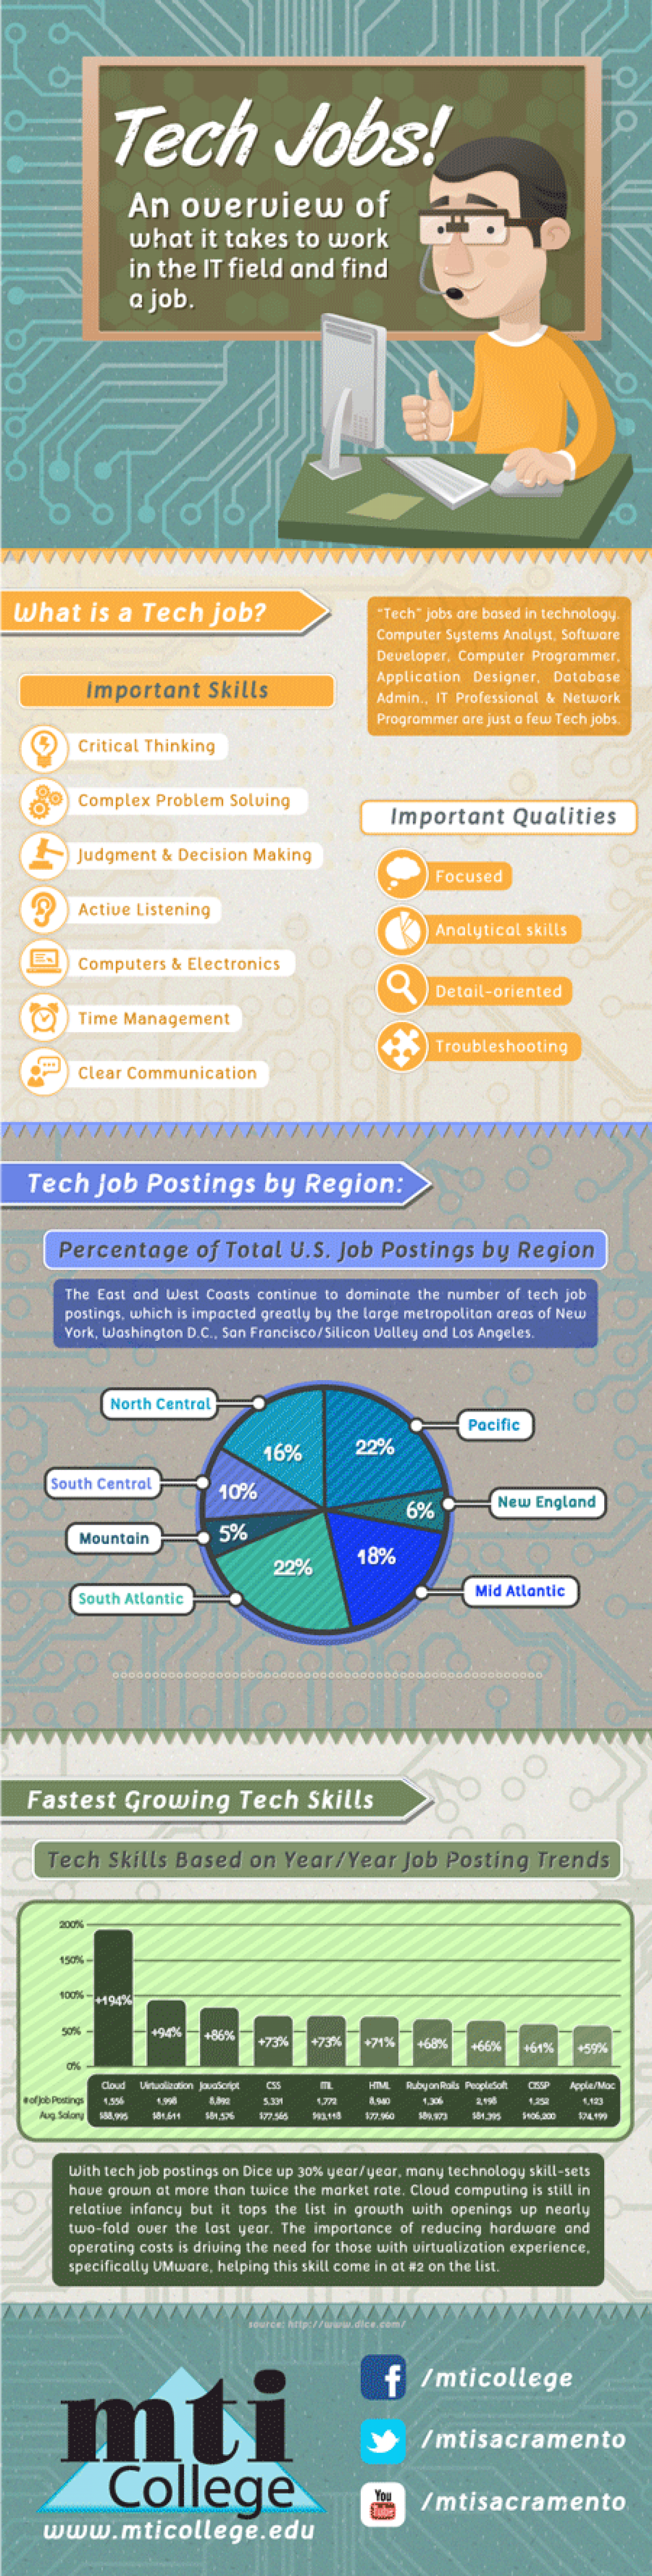 Tech Jobs Infographic